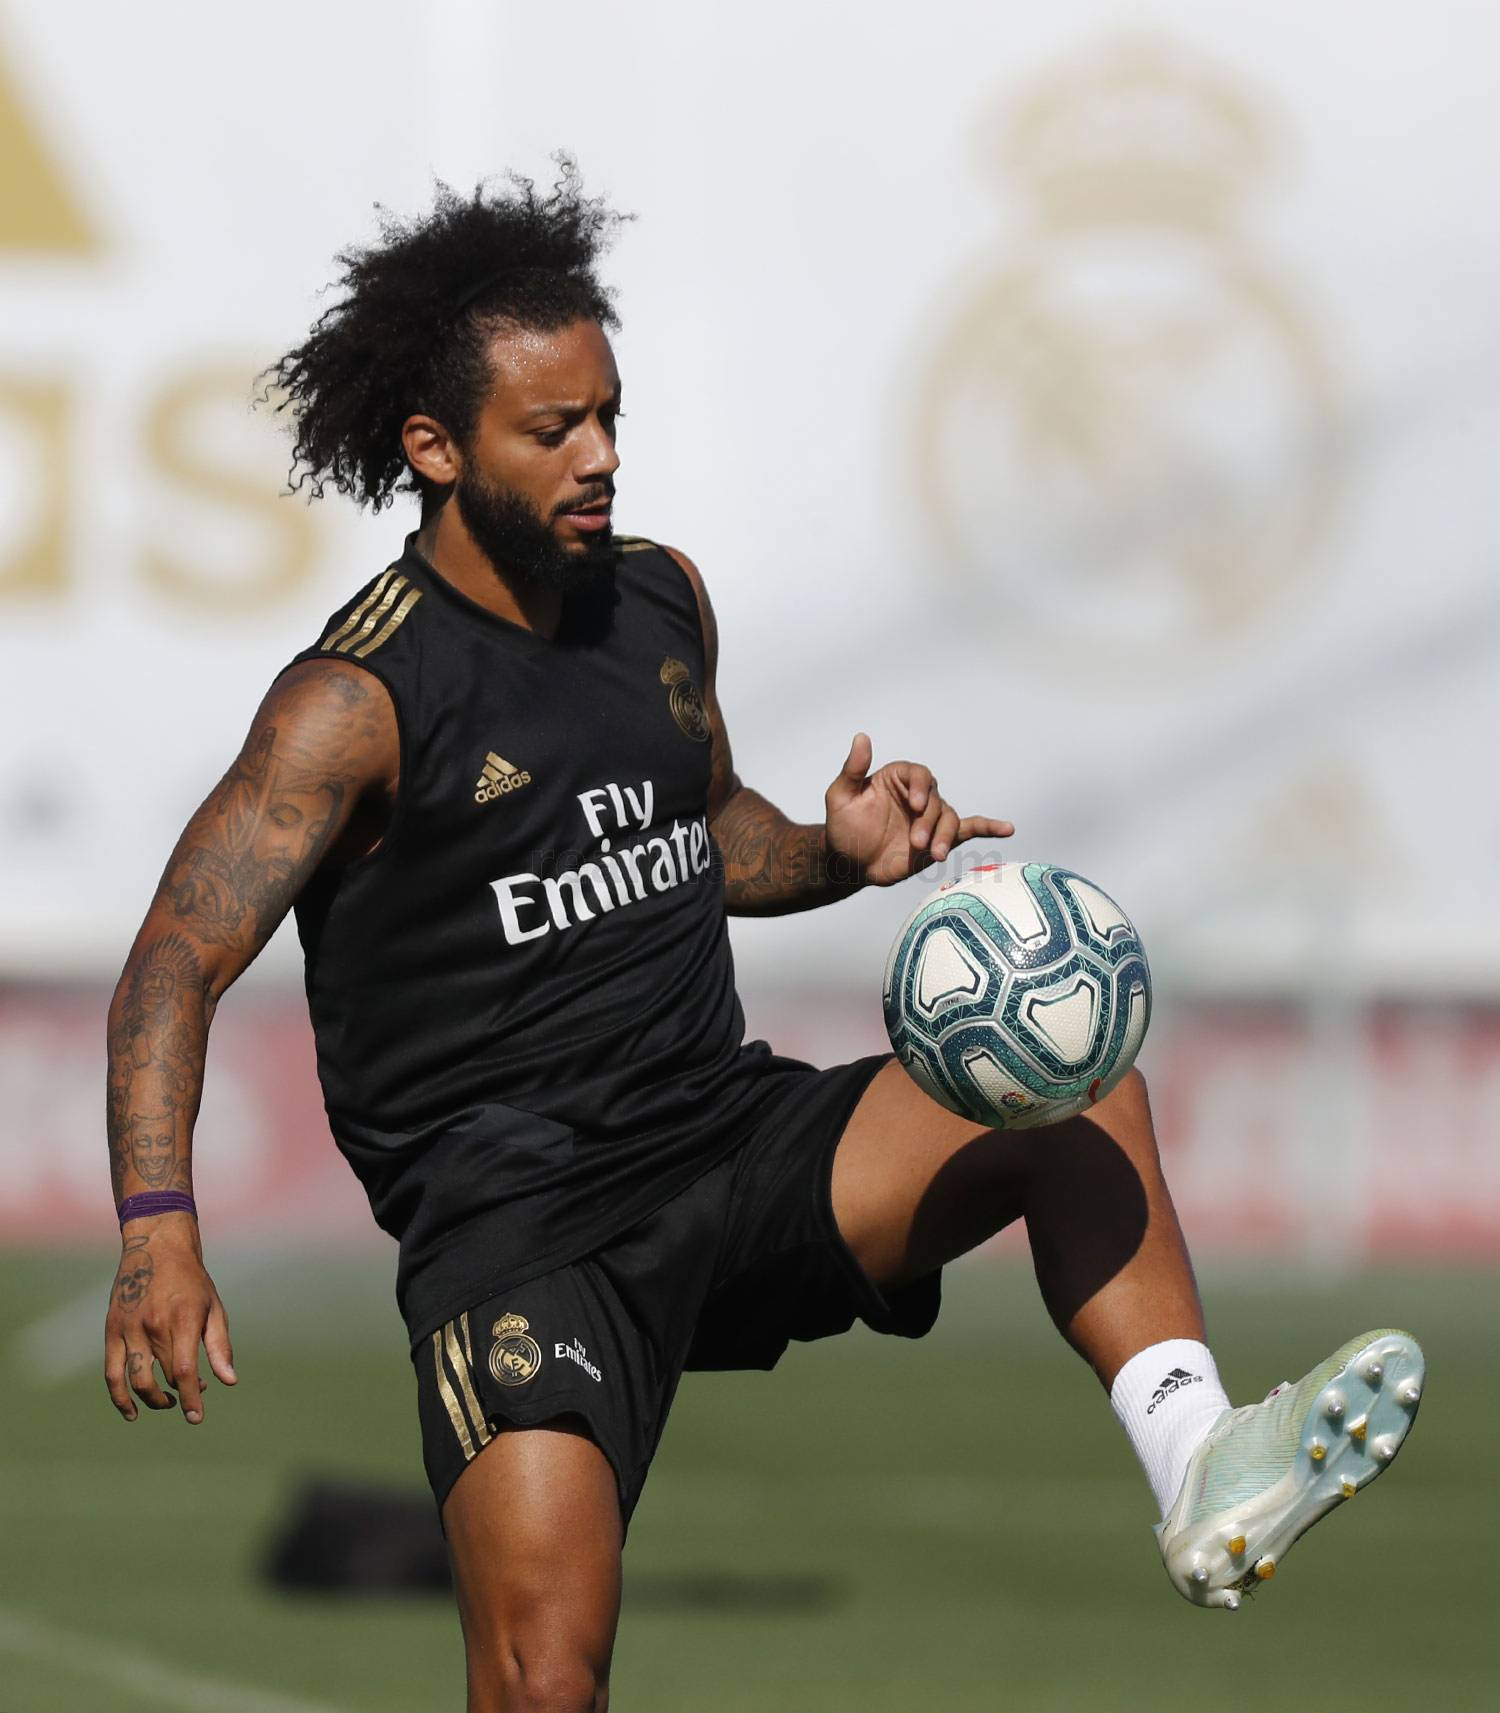 Real Madrid - Entrenamiento del Real Madrid  - 02-08-2019